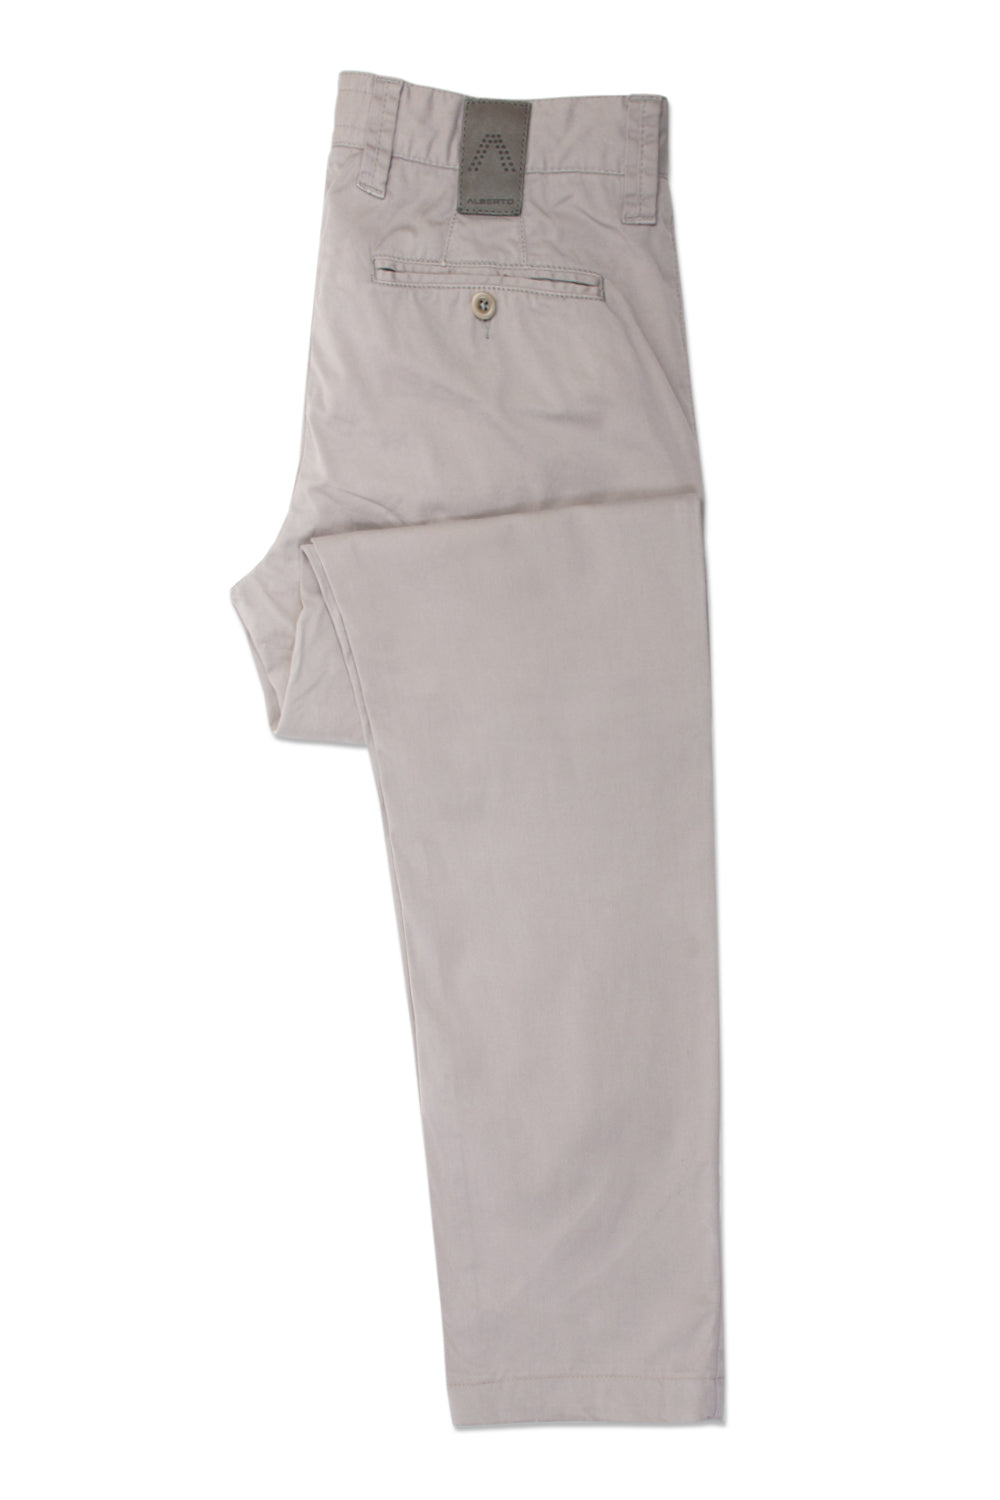 Alberto Light Grey Lou Regular Slim Fit Compact Cotton Pants for Luxmrkt.com Menswear Consignment Edmonton